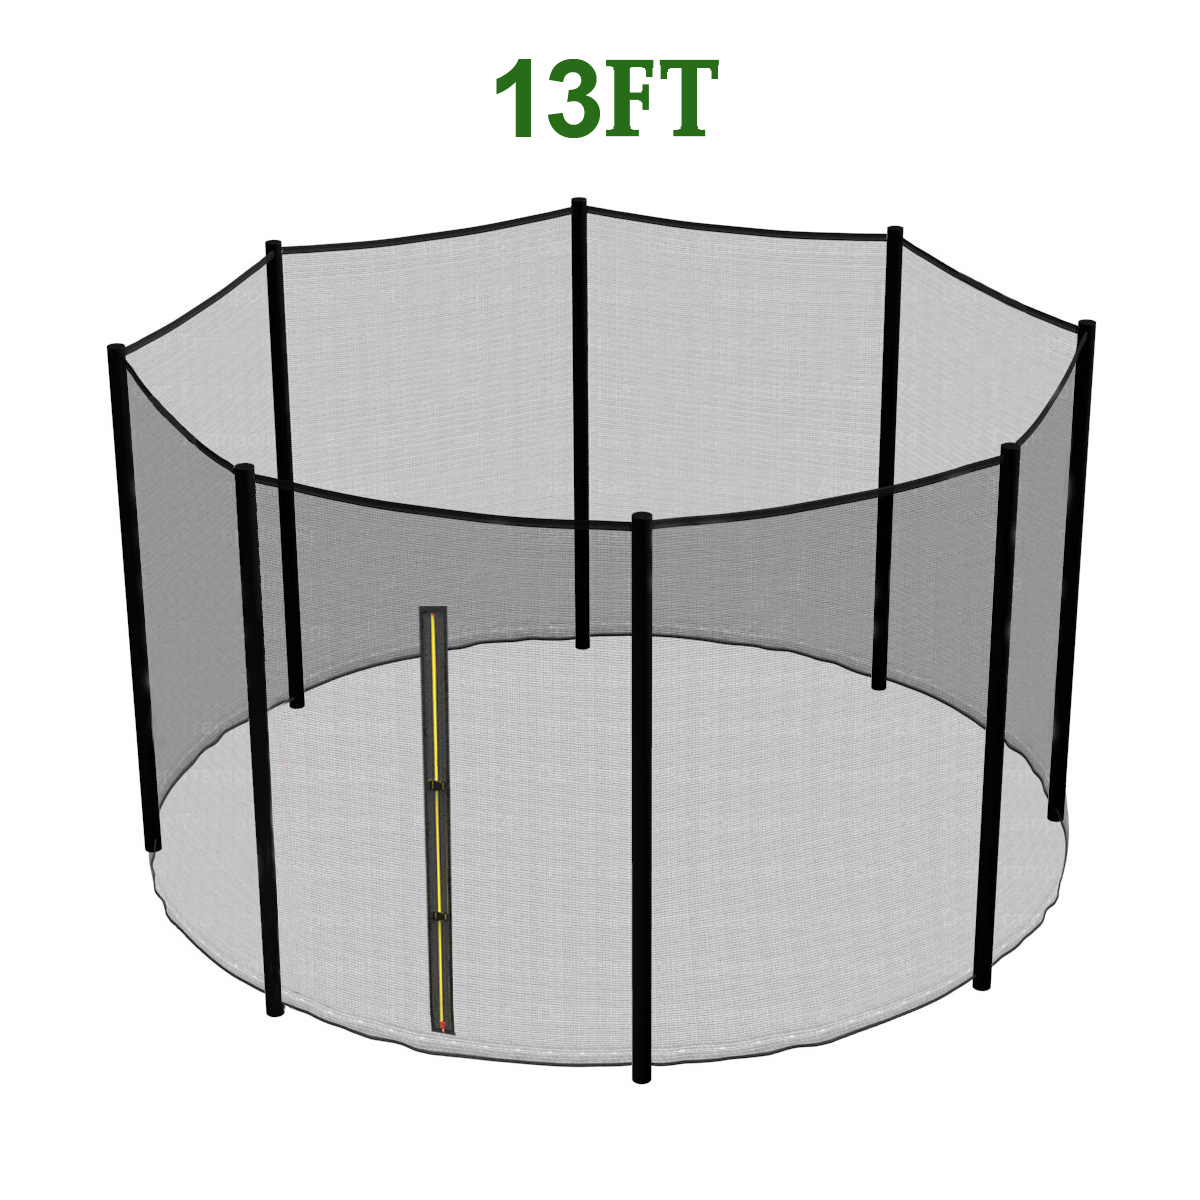 13ft Trampoline Replacement Safety Net Padding Spring